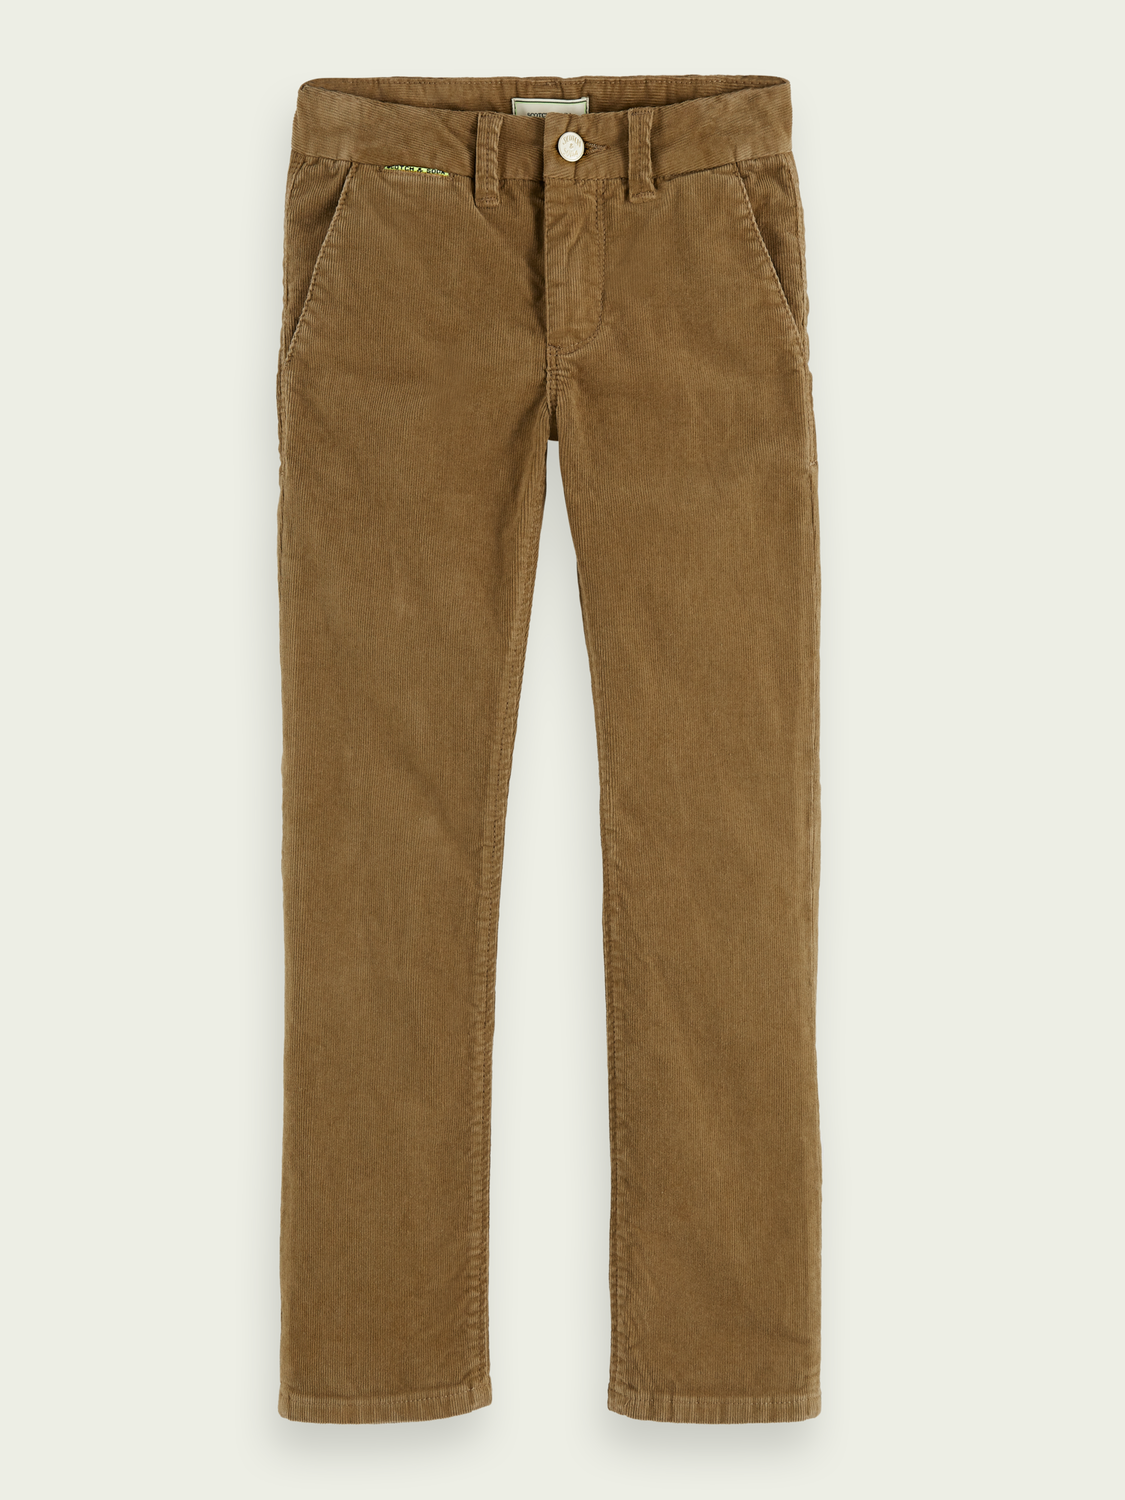 Kids Relaxed slim fit corduroy chino